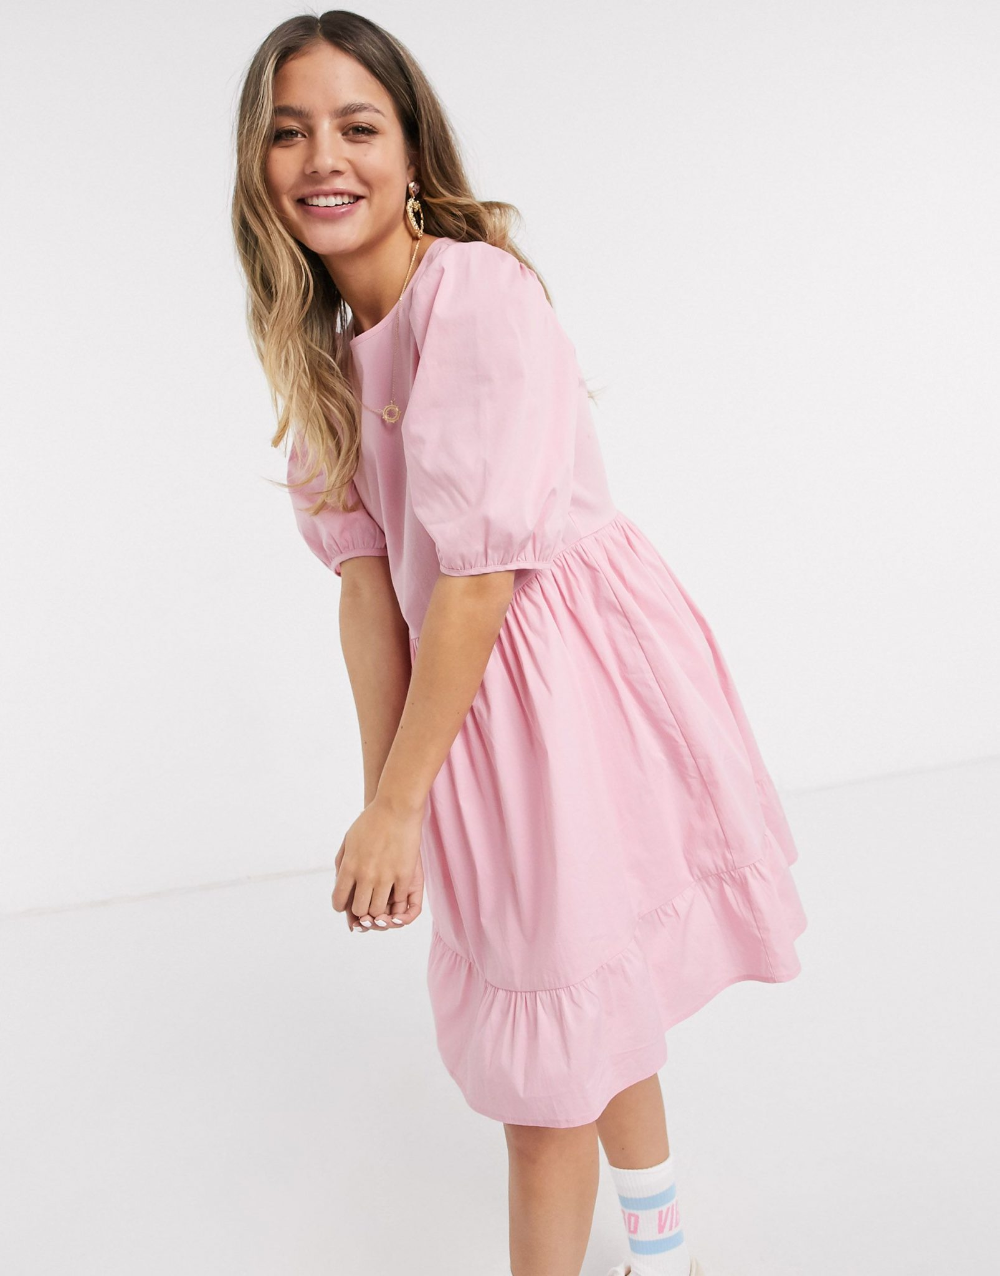 Pin on DAY Dresses